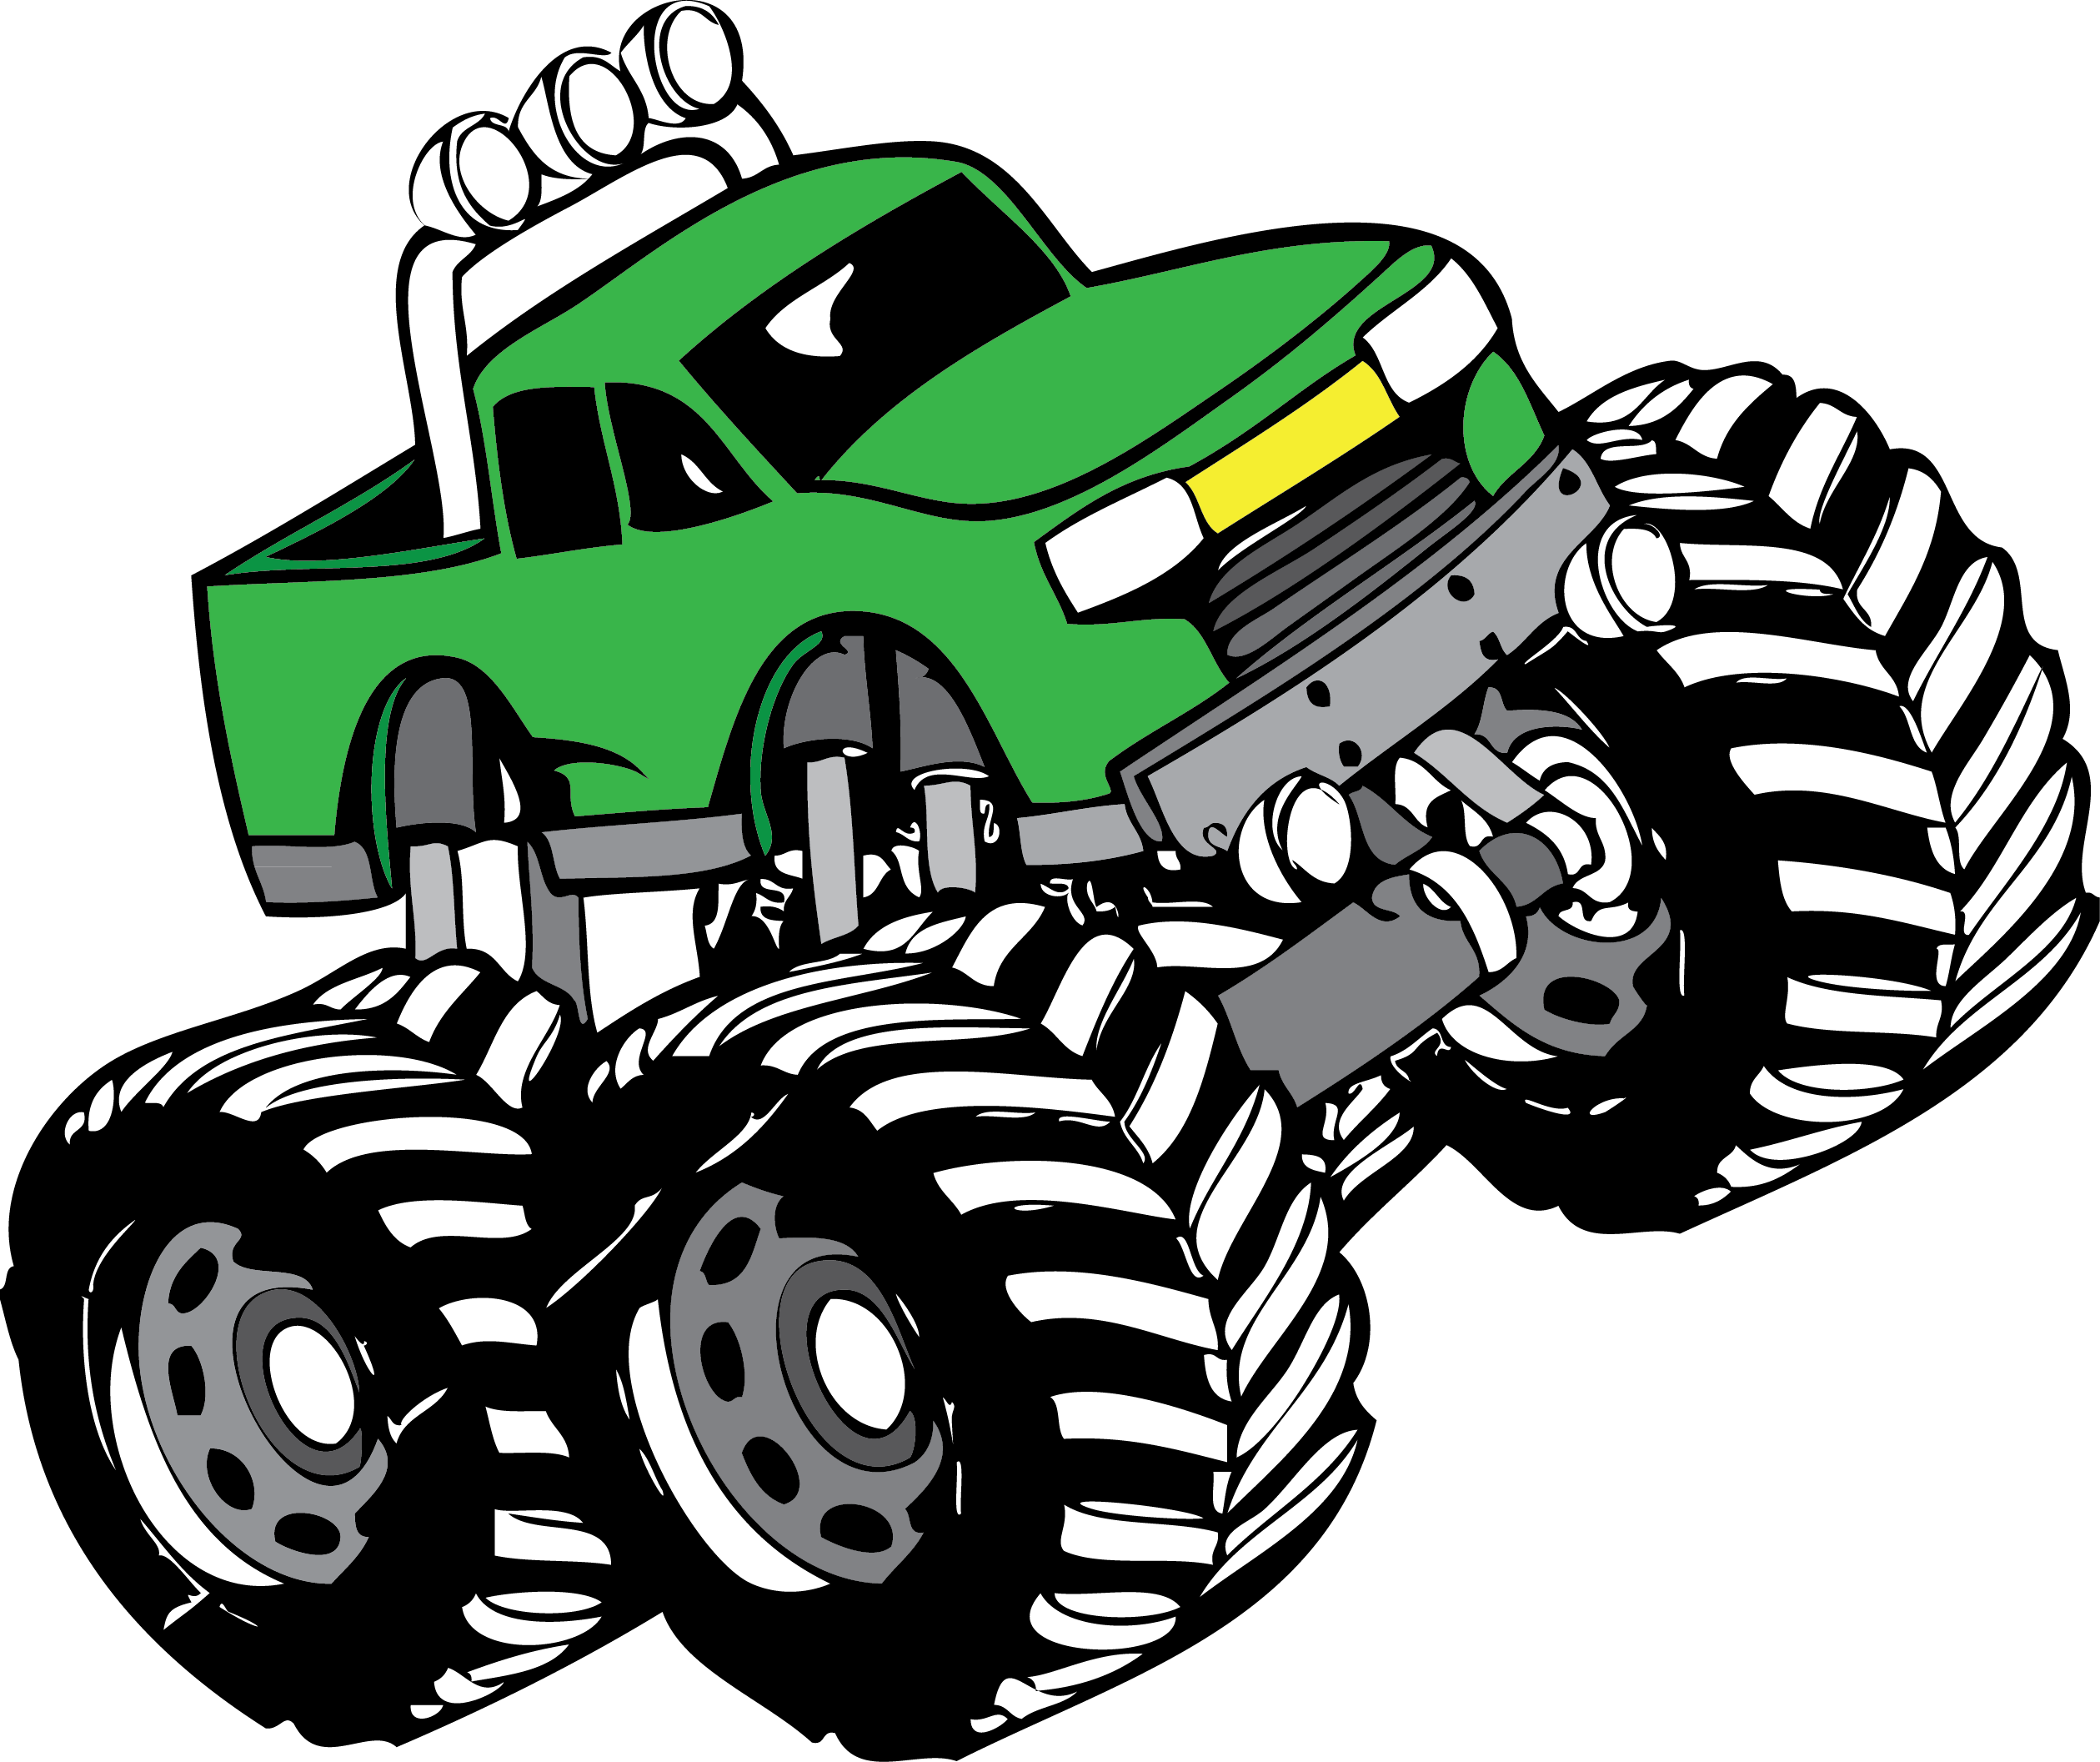 Silverado drawing monster truck. Clip art trucks pinterest